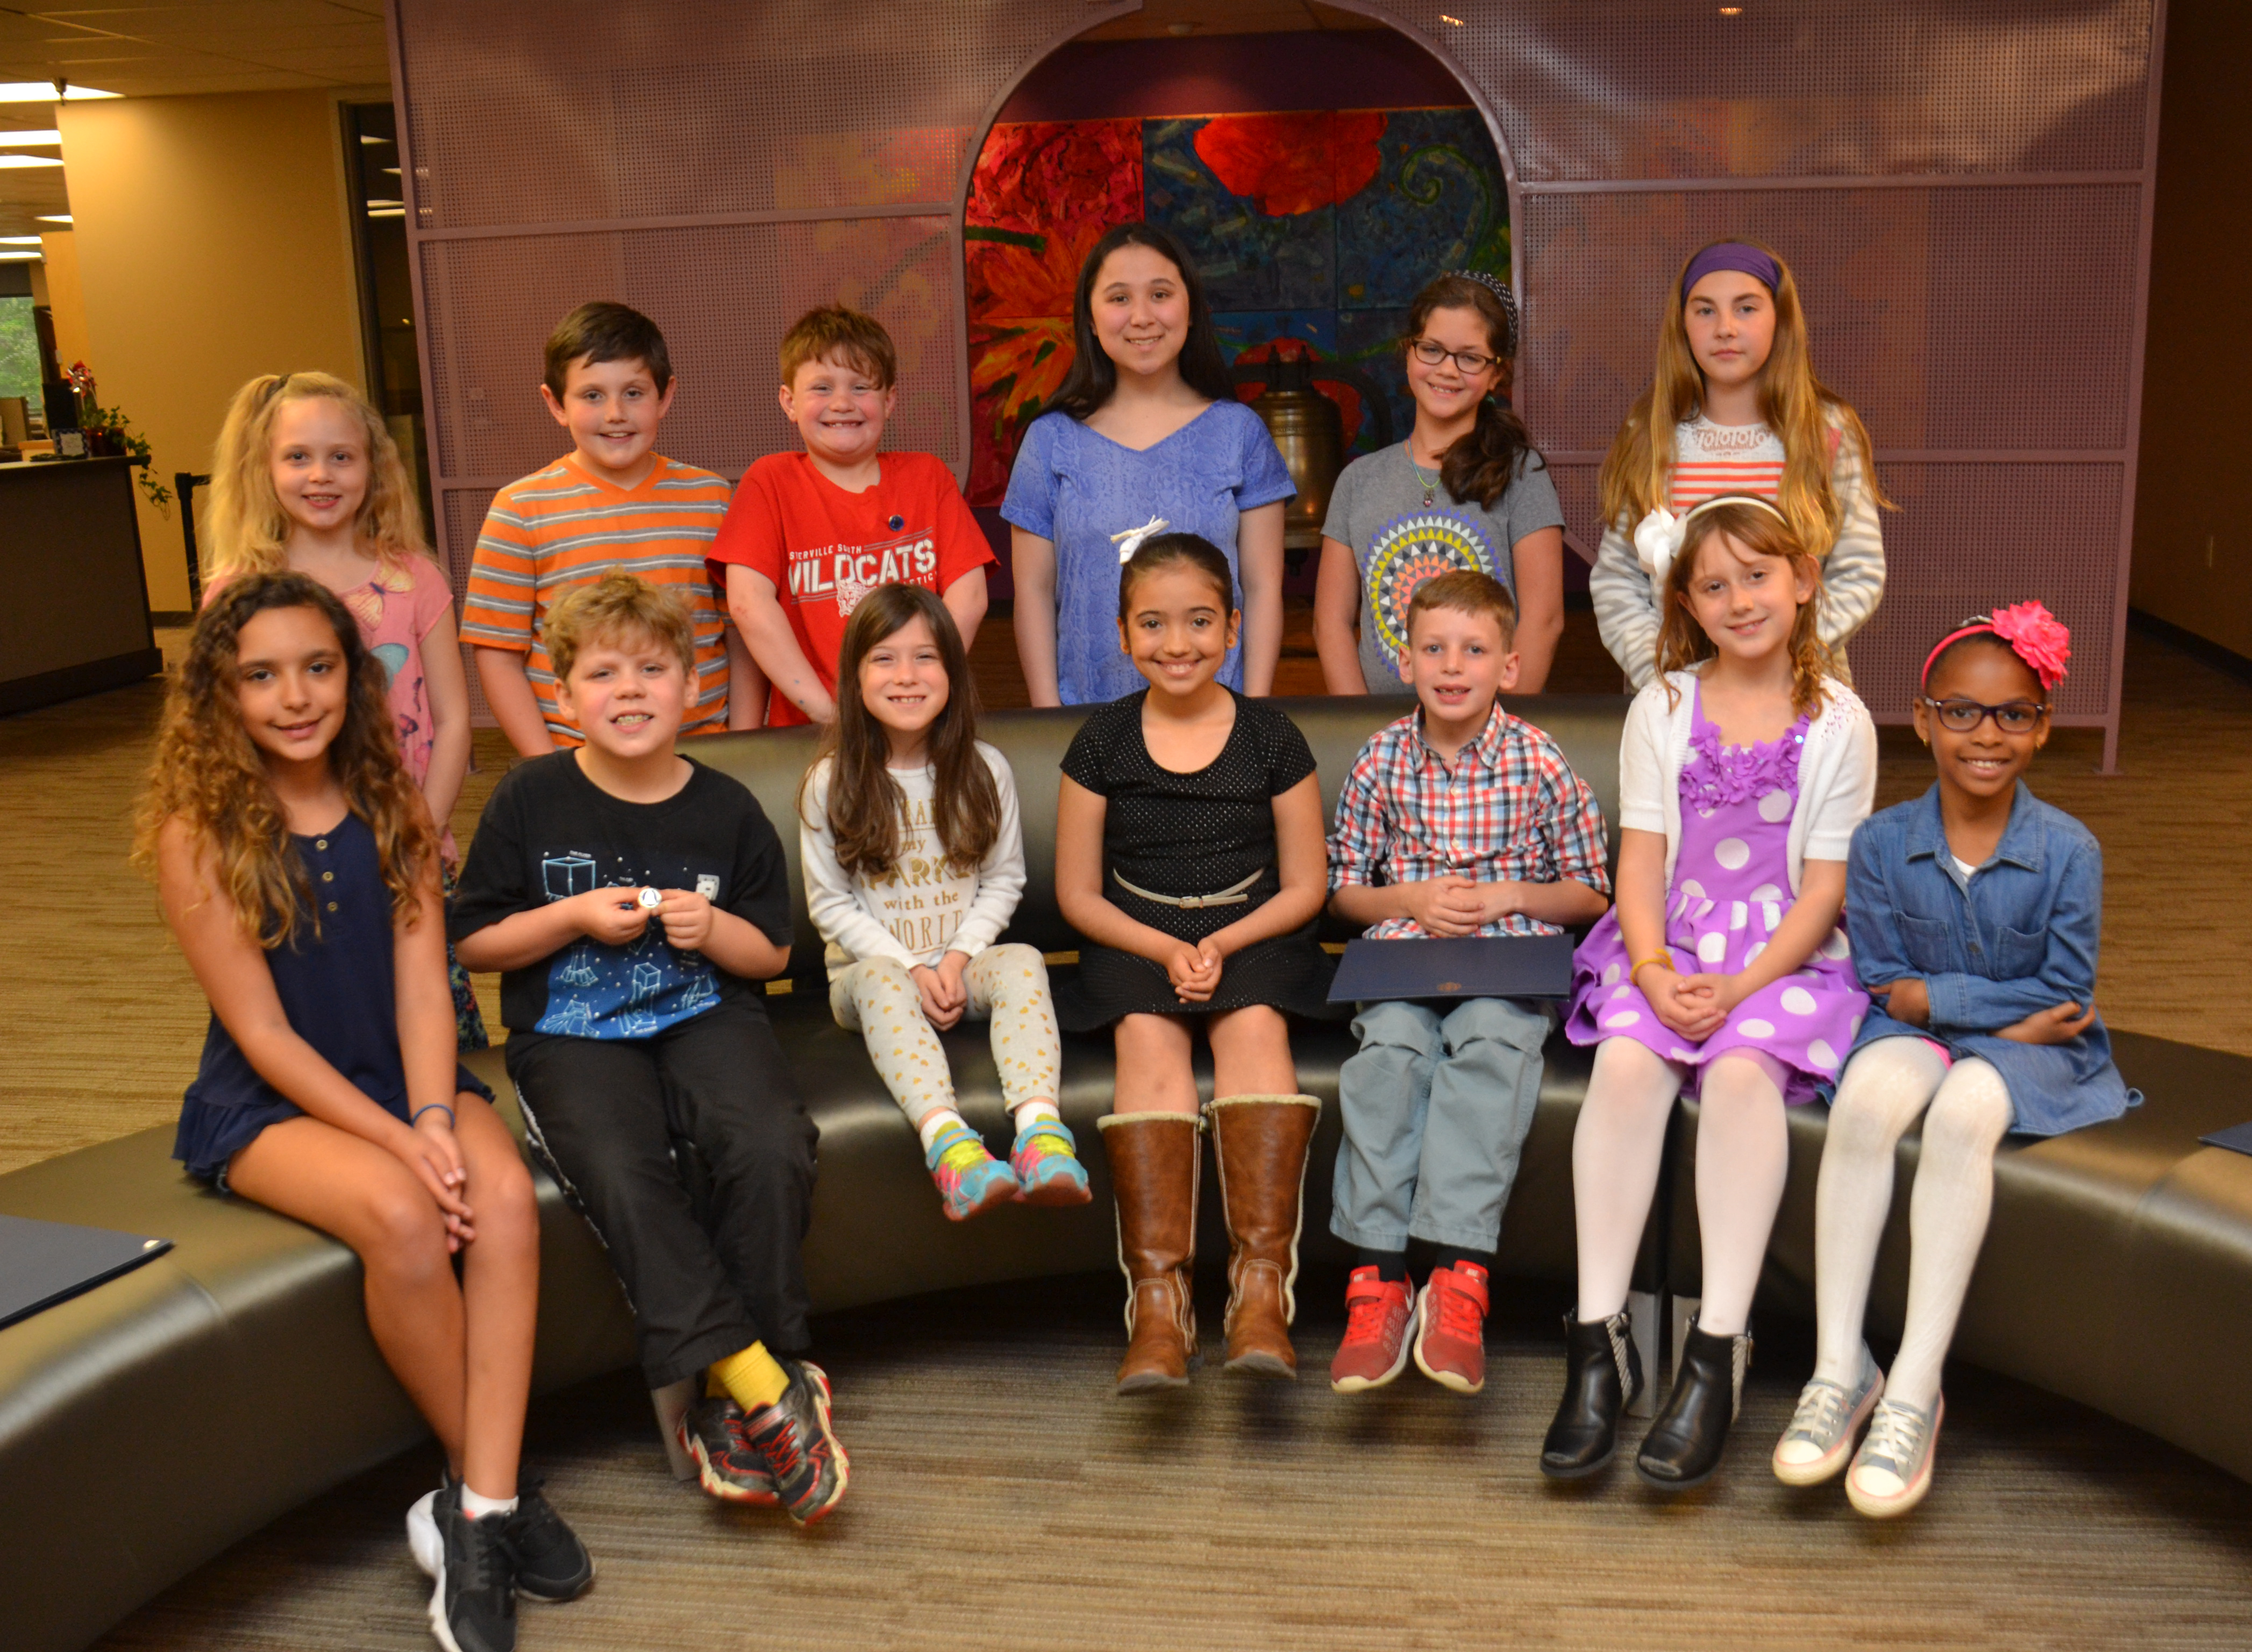 Thirteen State Reflections competition students sit on a couch after being recognized at a Board meeting.